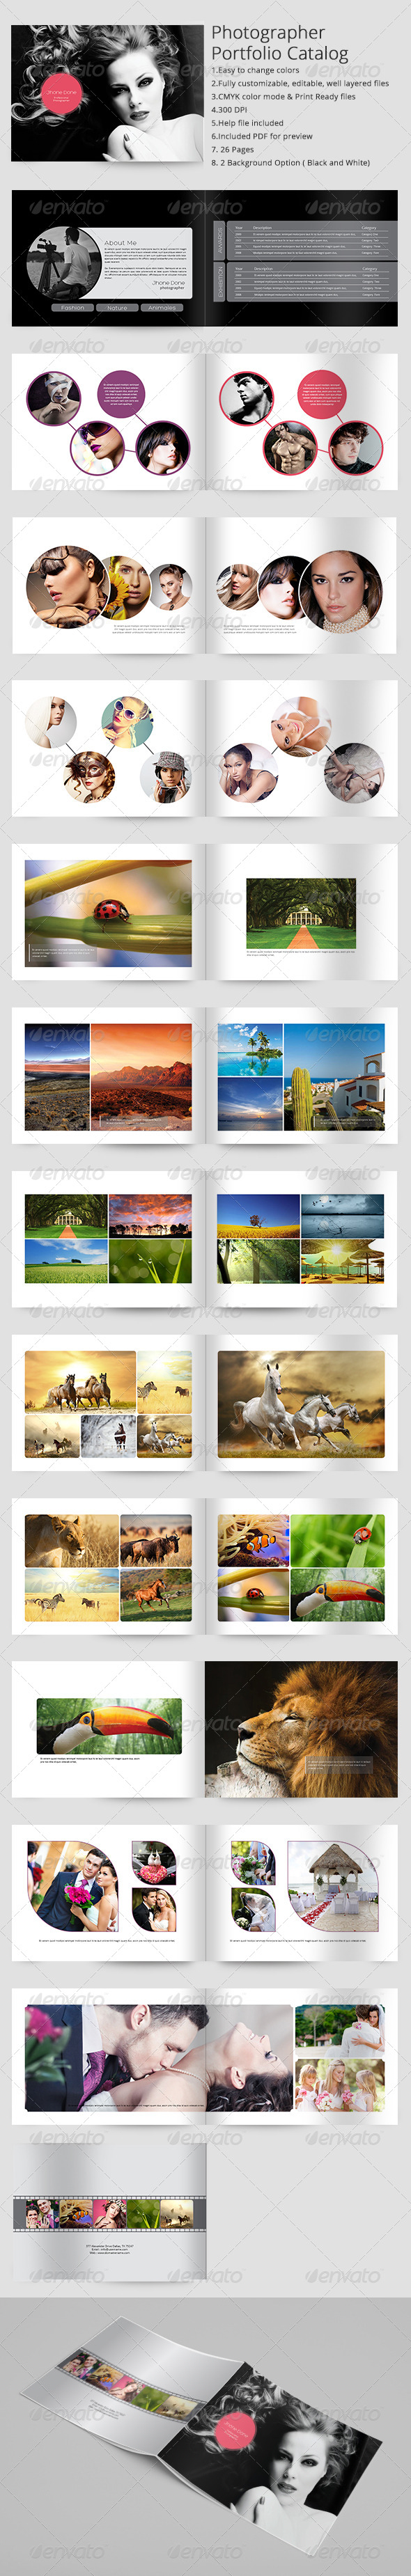 GraphicRiver Photographer Portfolio Catalog Indesign Template 7448903